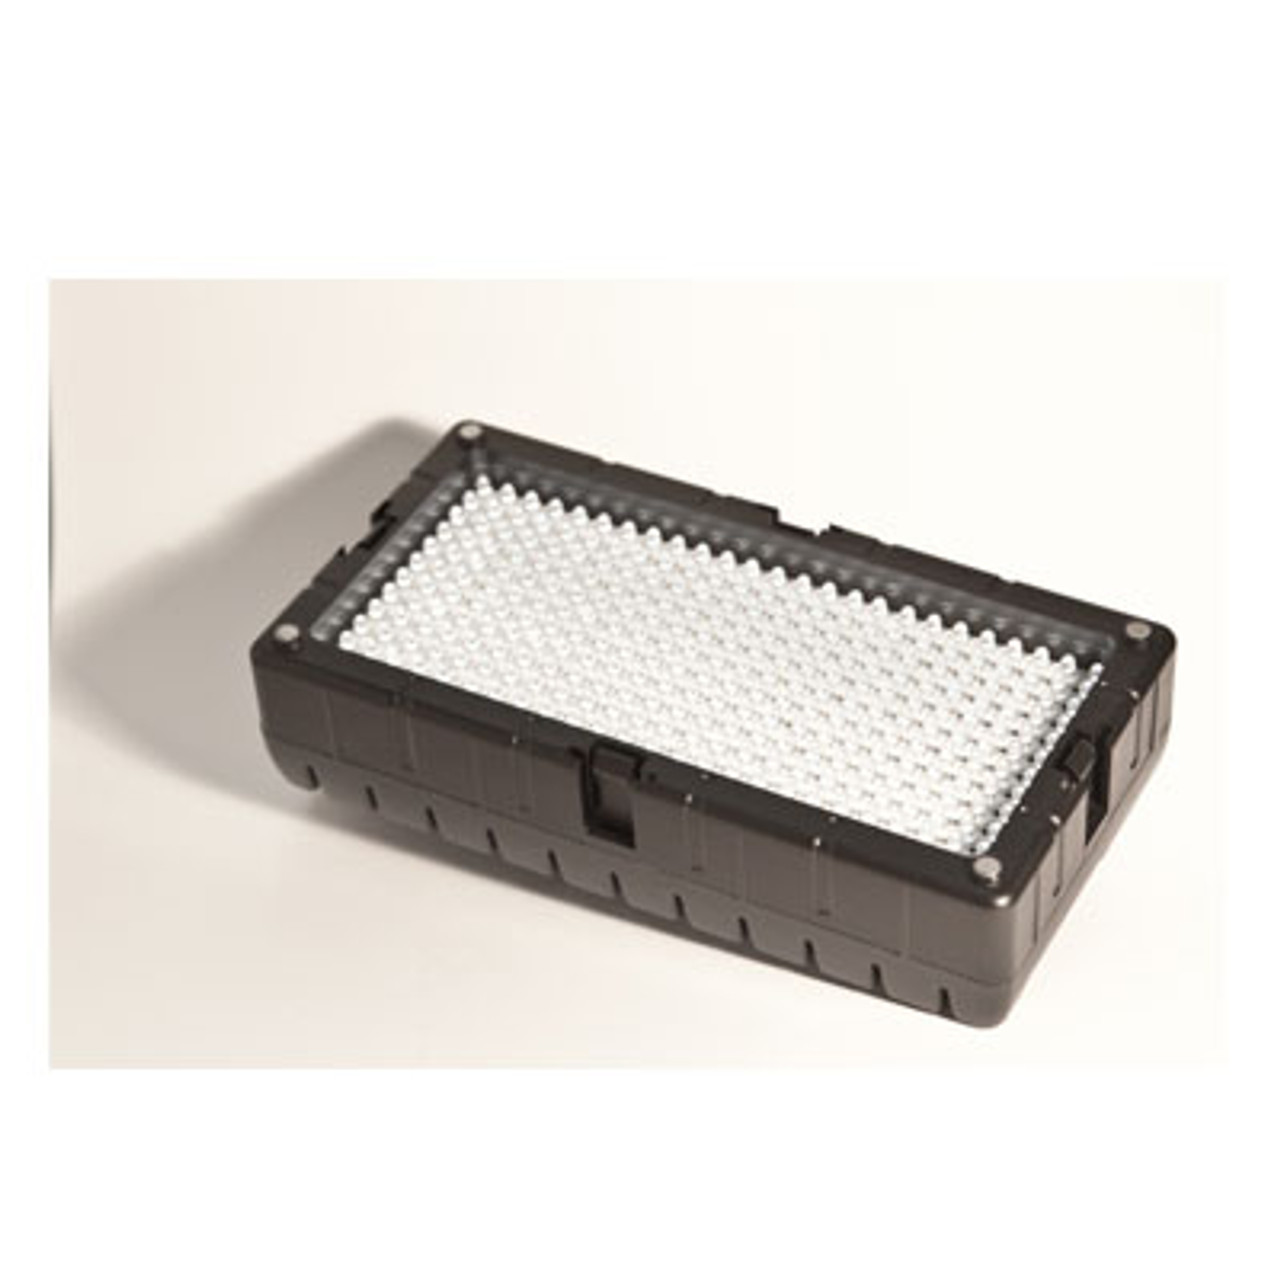 STL-300HD Light Block